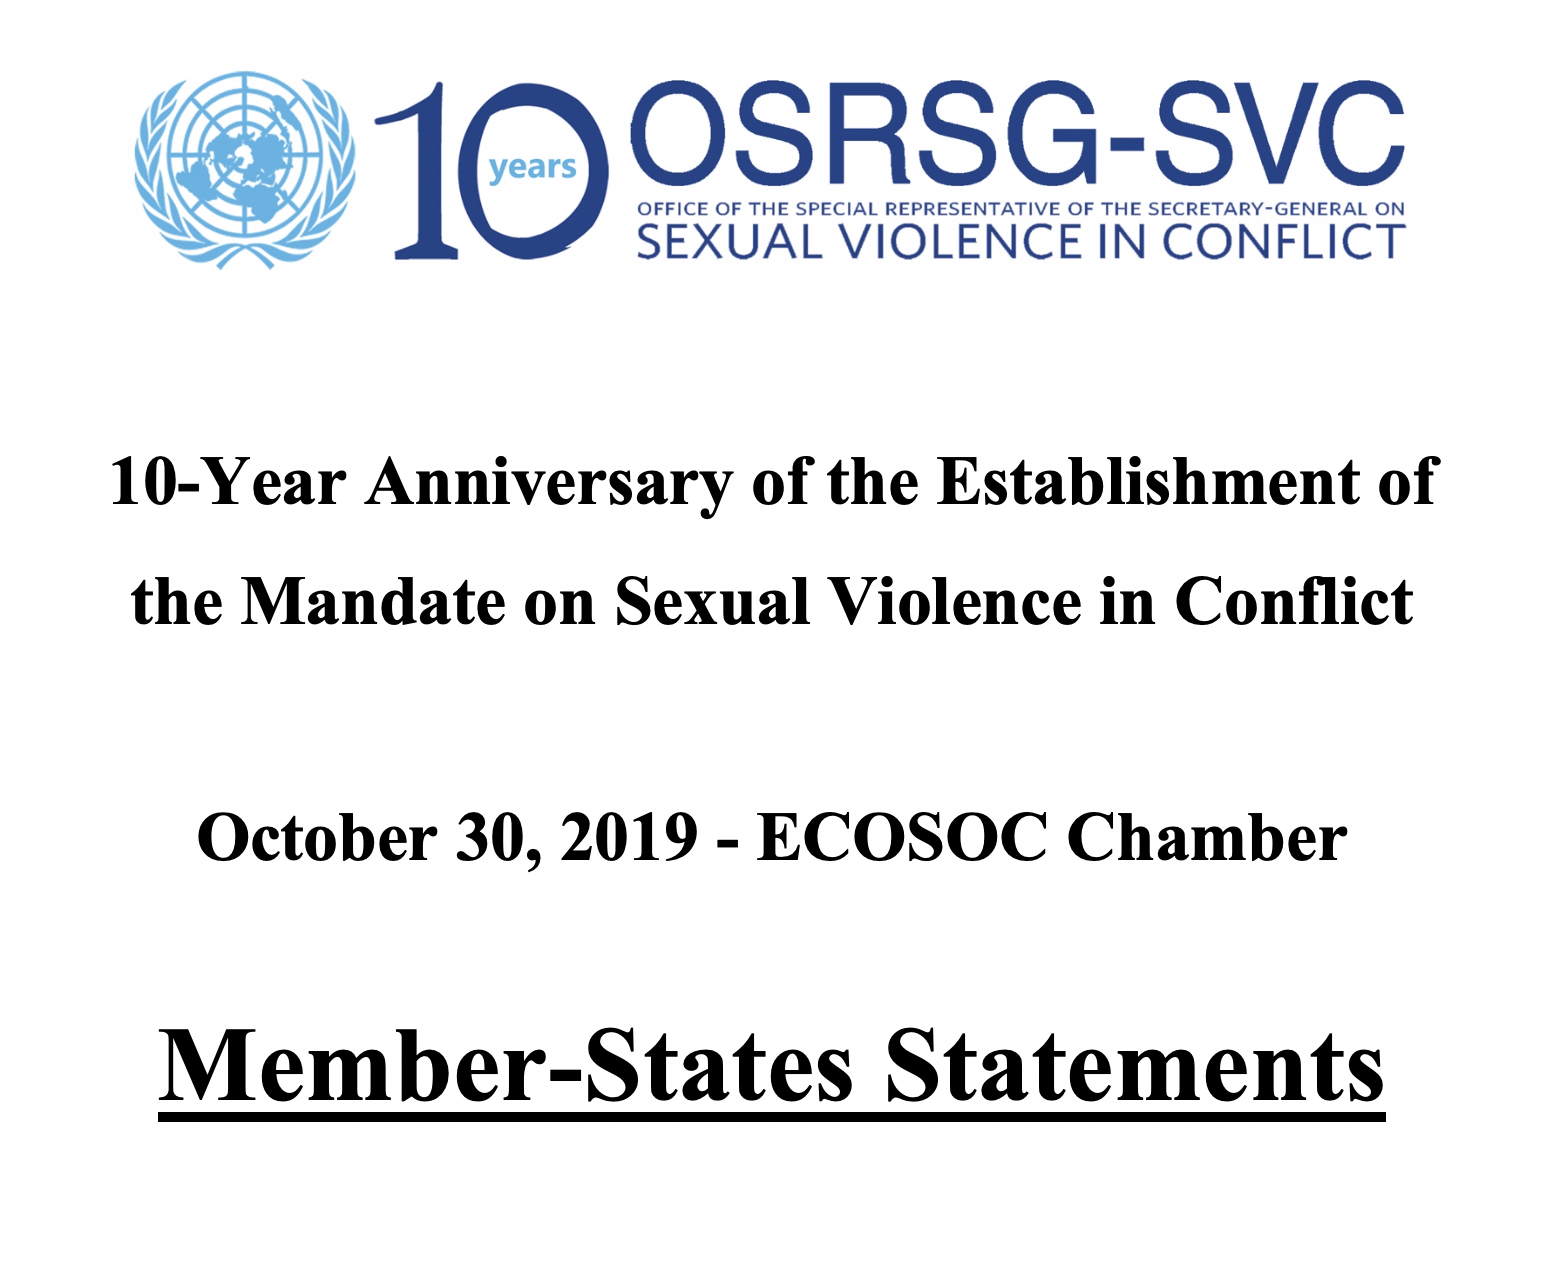 Member-States Statements at the 10-Year Anniversary Event to Commemorate the Establishment of the Mandate on Sexual Violence in Conflict